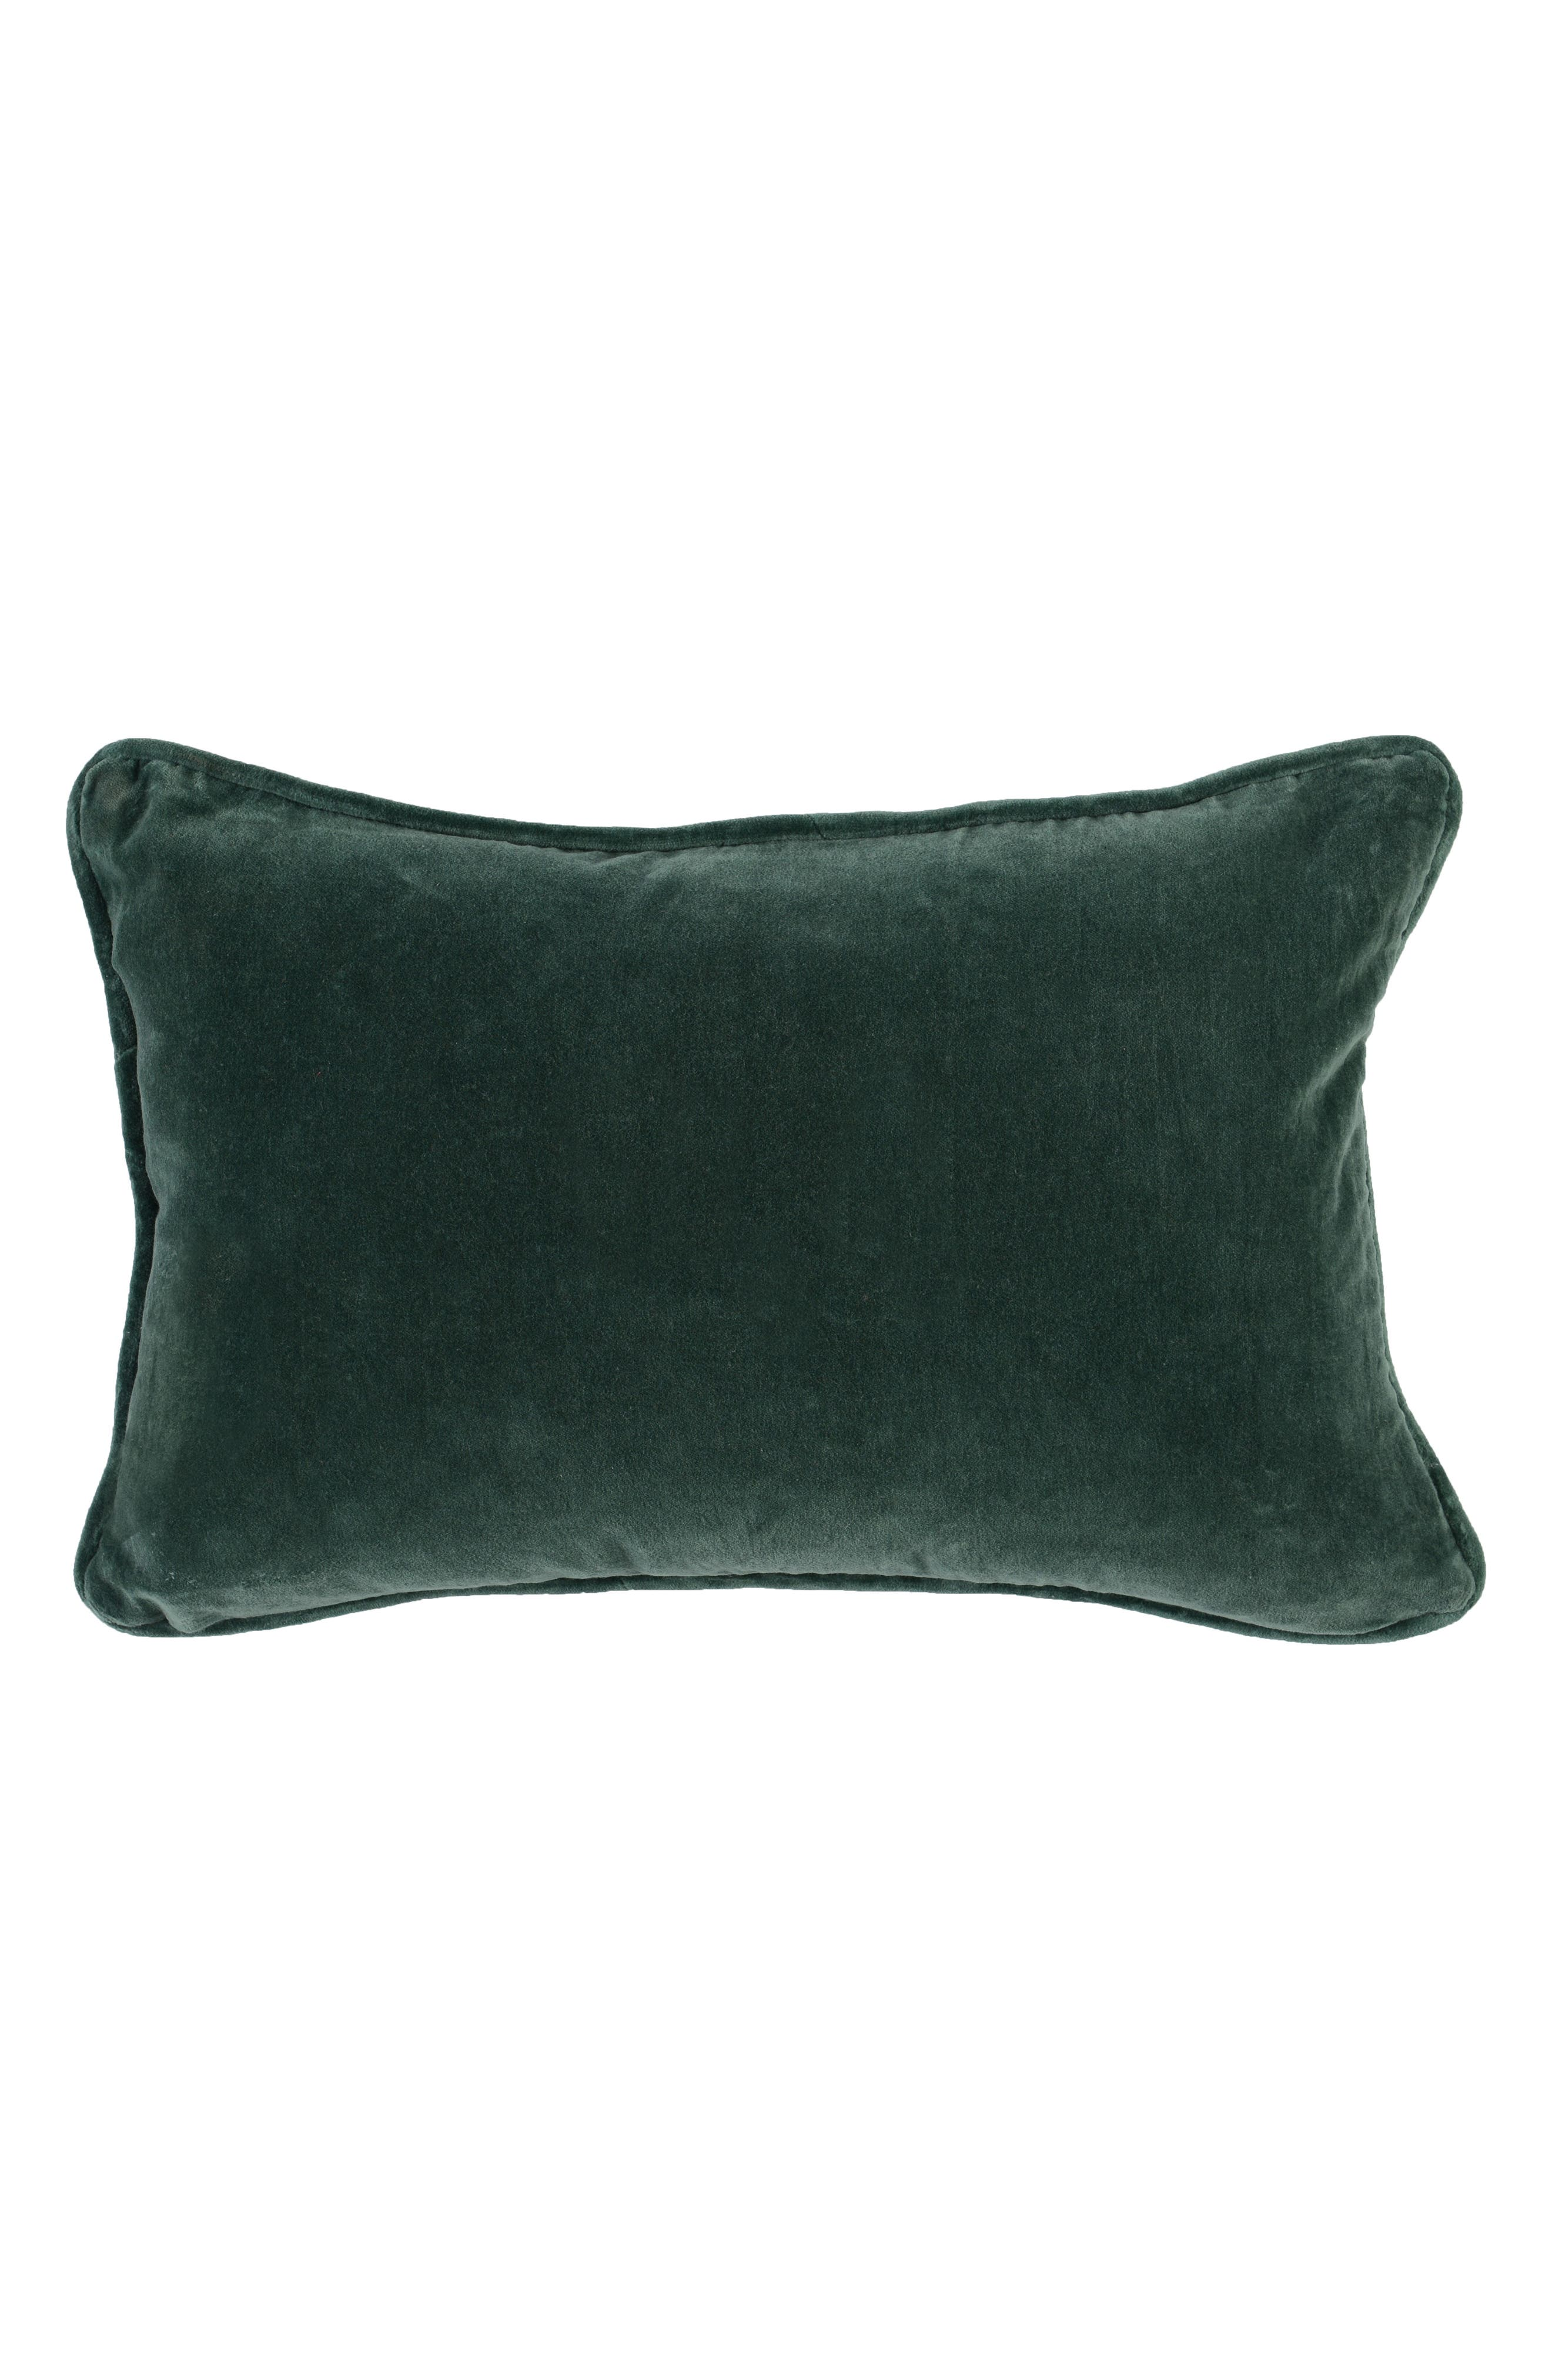 Abby Accent Pillow,                             Alternate thumbnail 2, color,                             NAVY/ GREEN